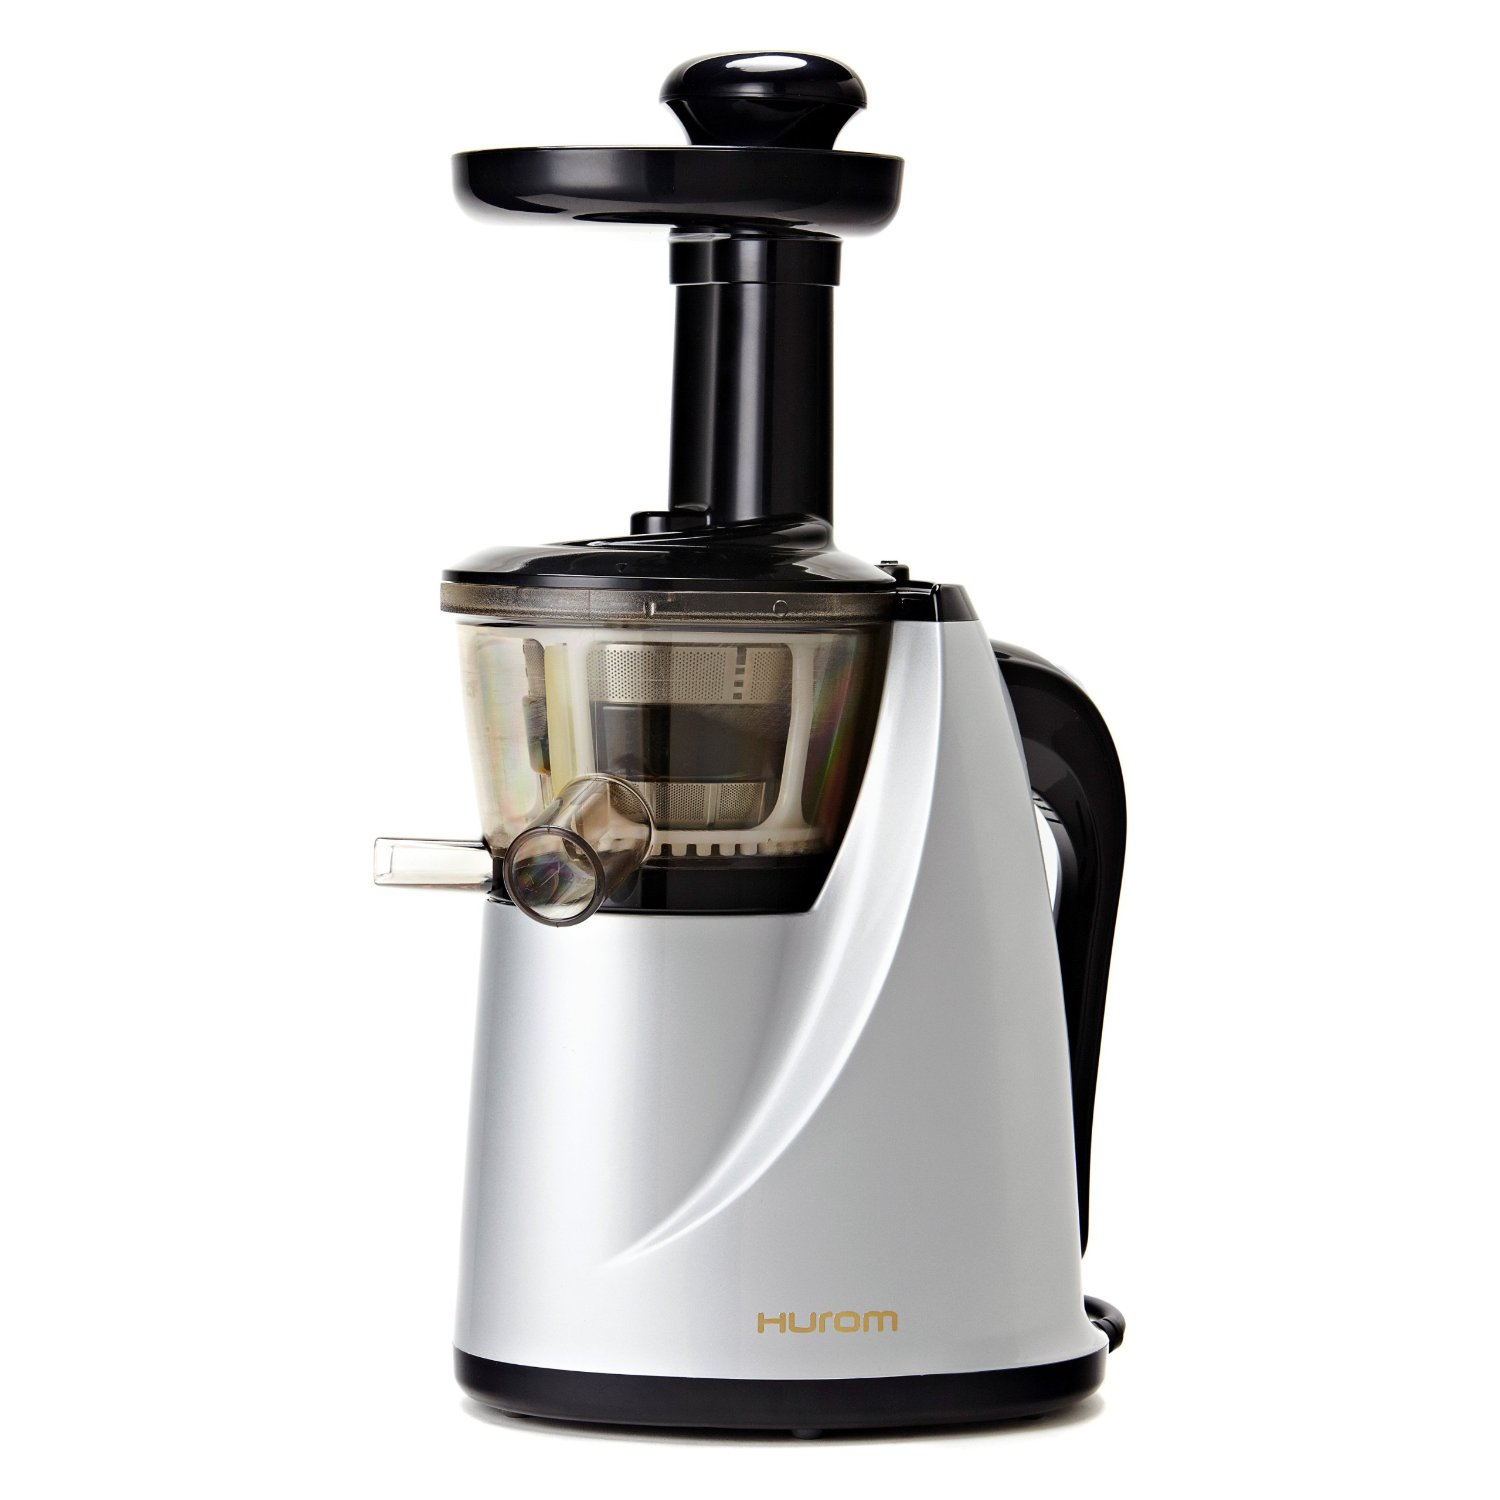 Slow Speed Masticating Auger Juicer : Hurom Juicer Reviews Hurom Cold Press Juicers Comparison - Best Cold Press Juicers